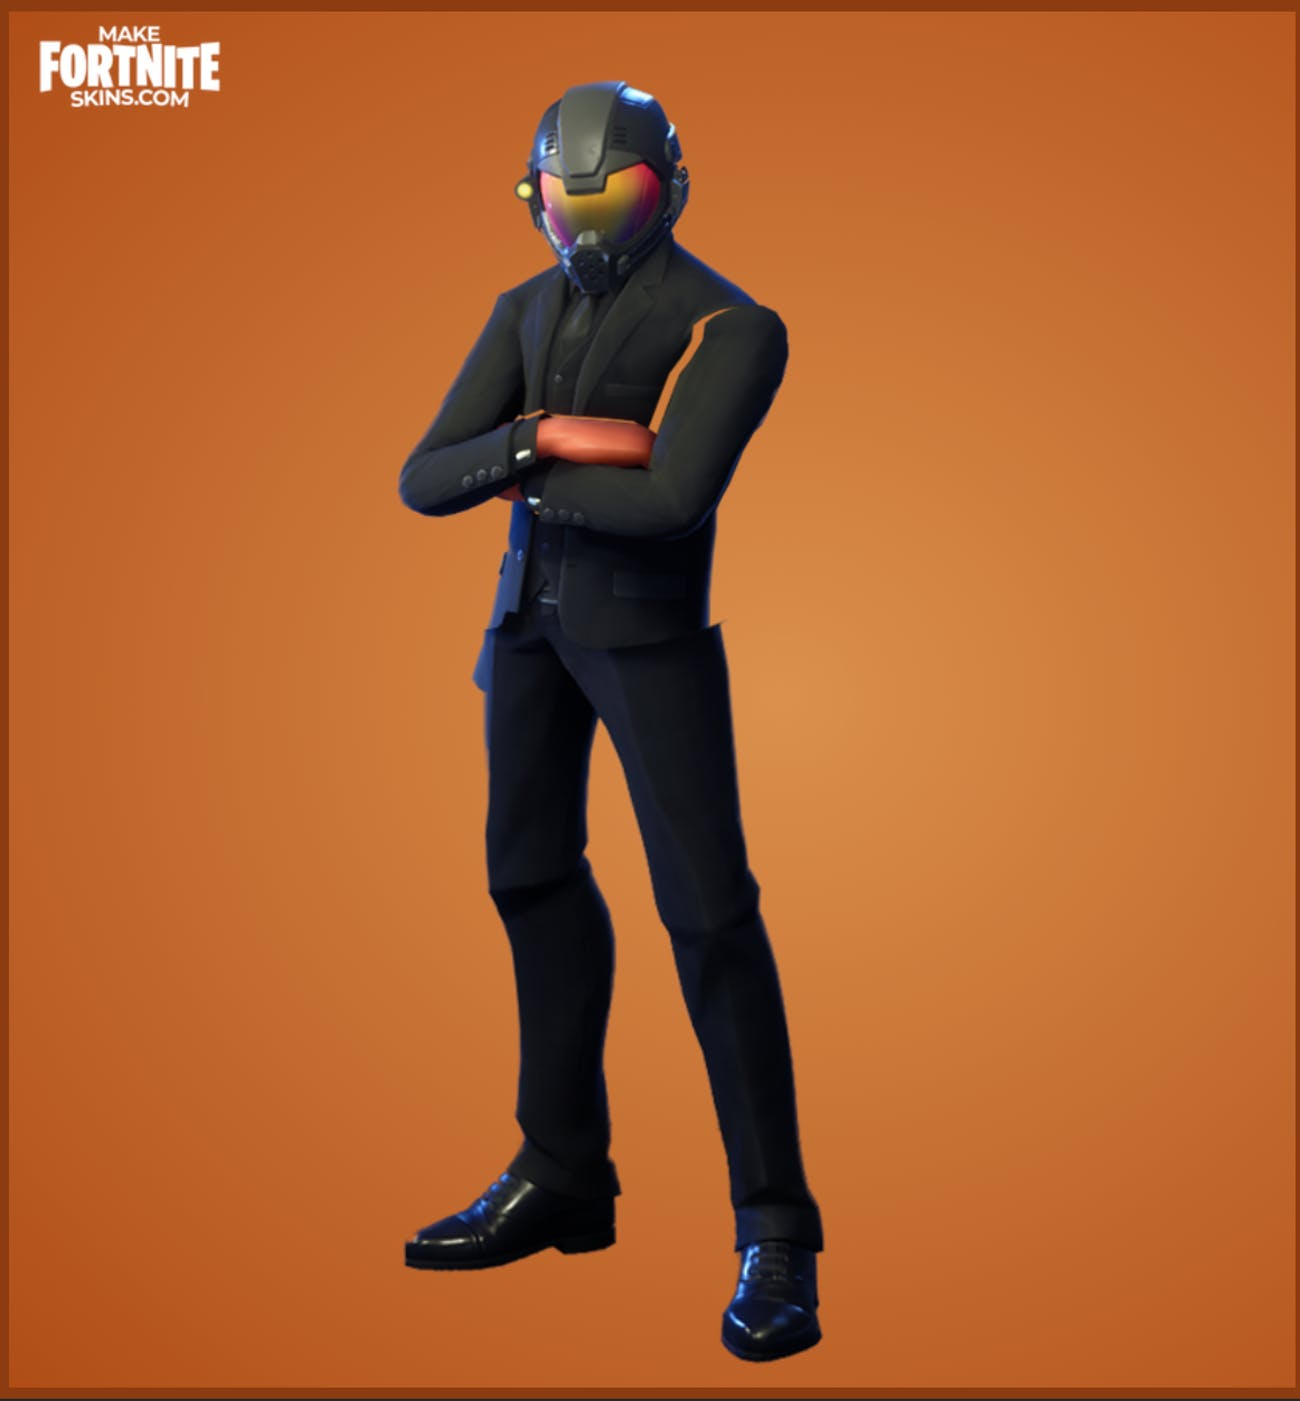 Customized Fortnite Skin